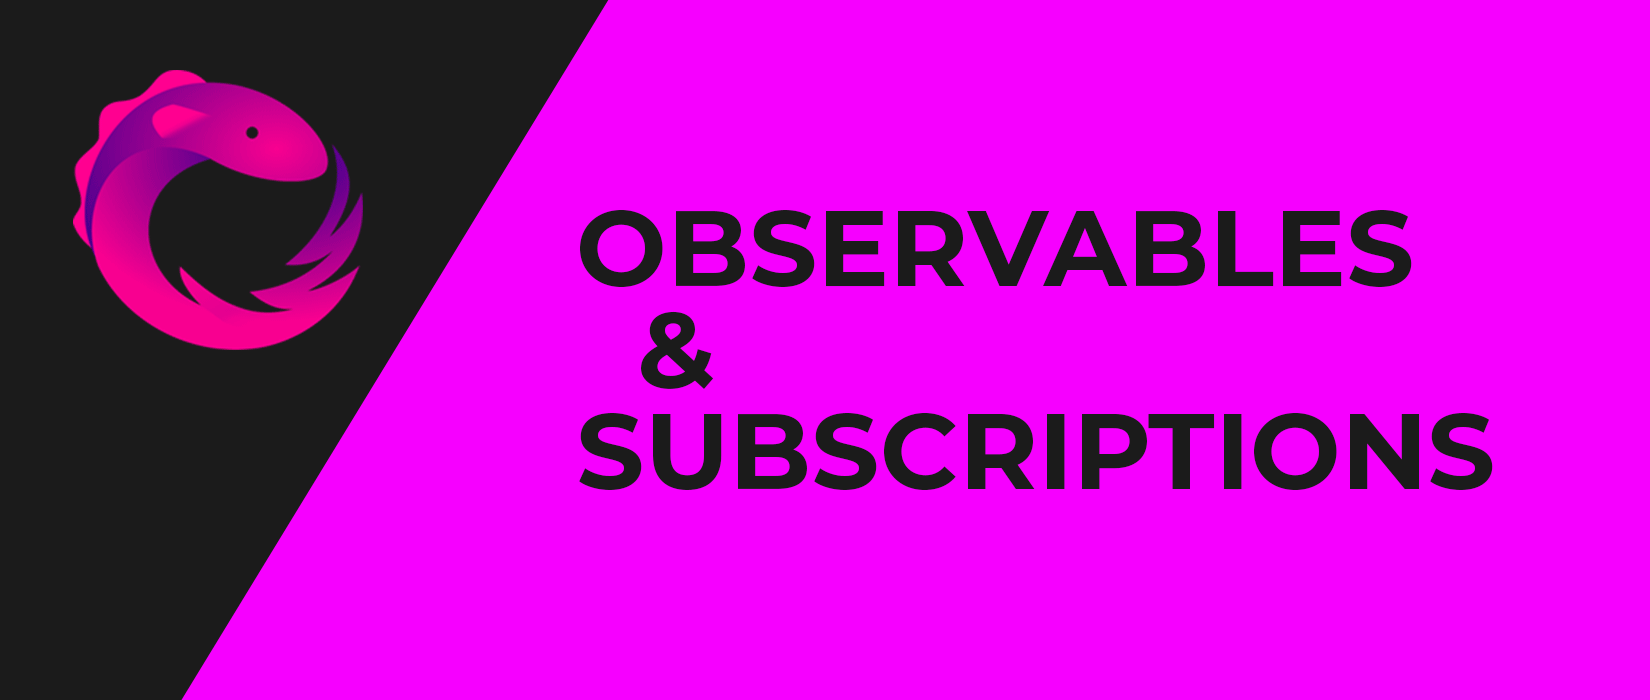 RxJS Observables Tutorial - Creating & Subscribing to